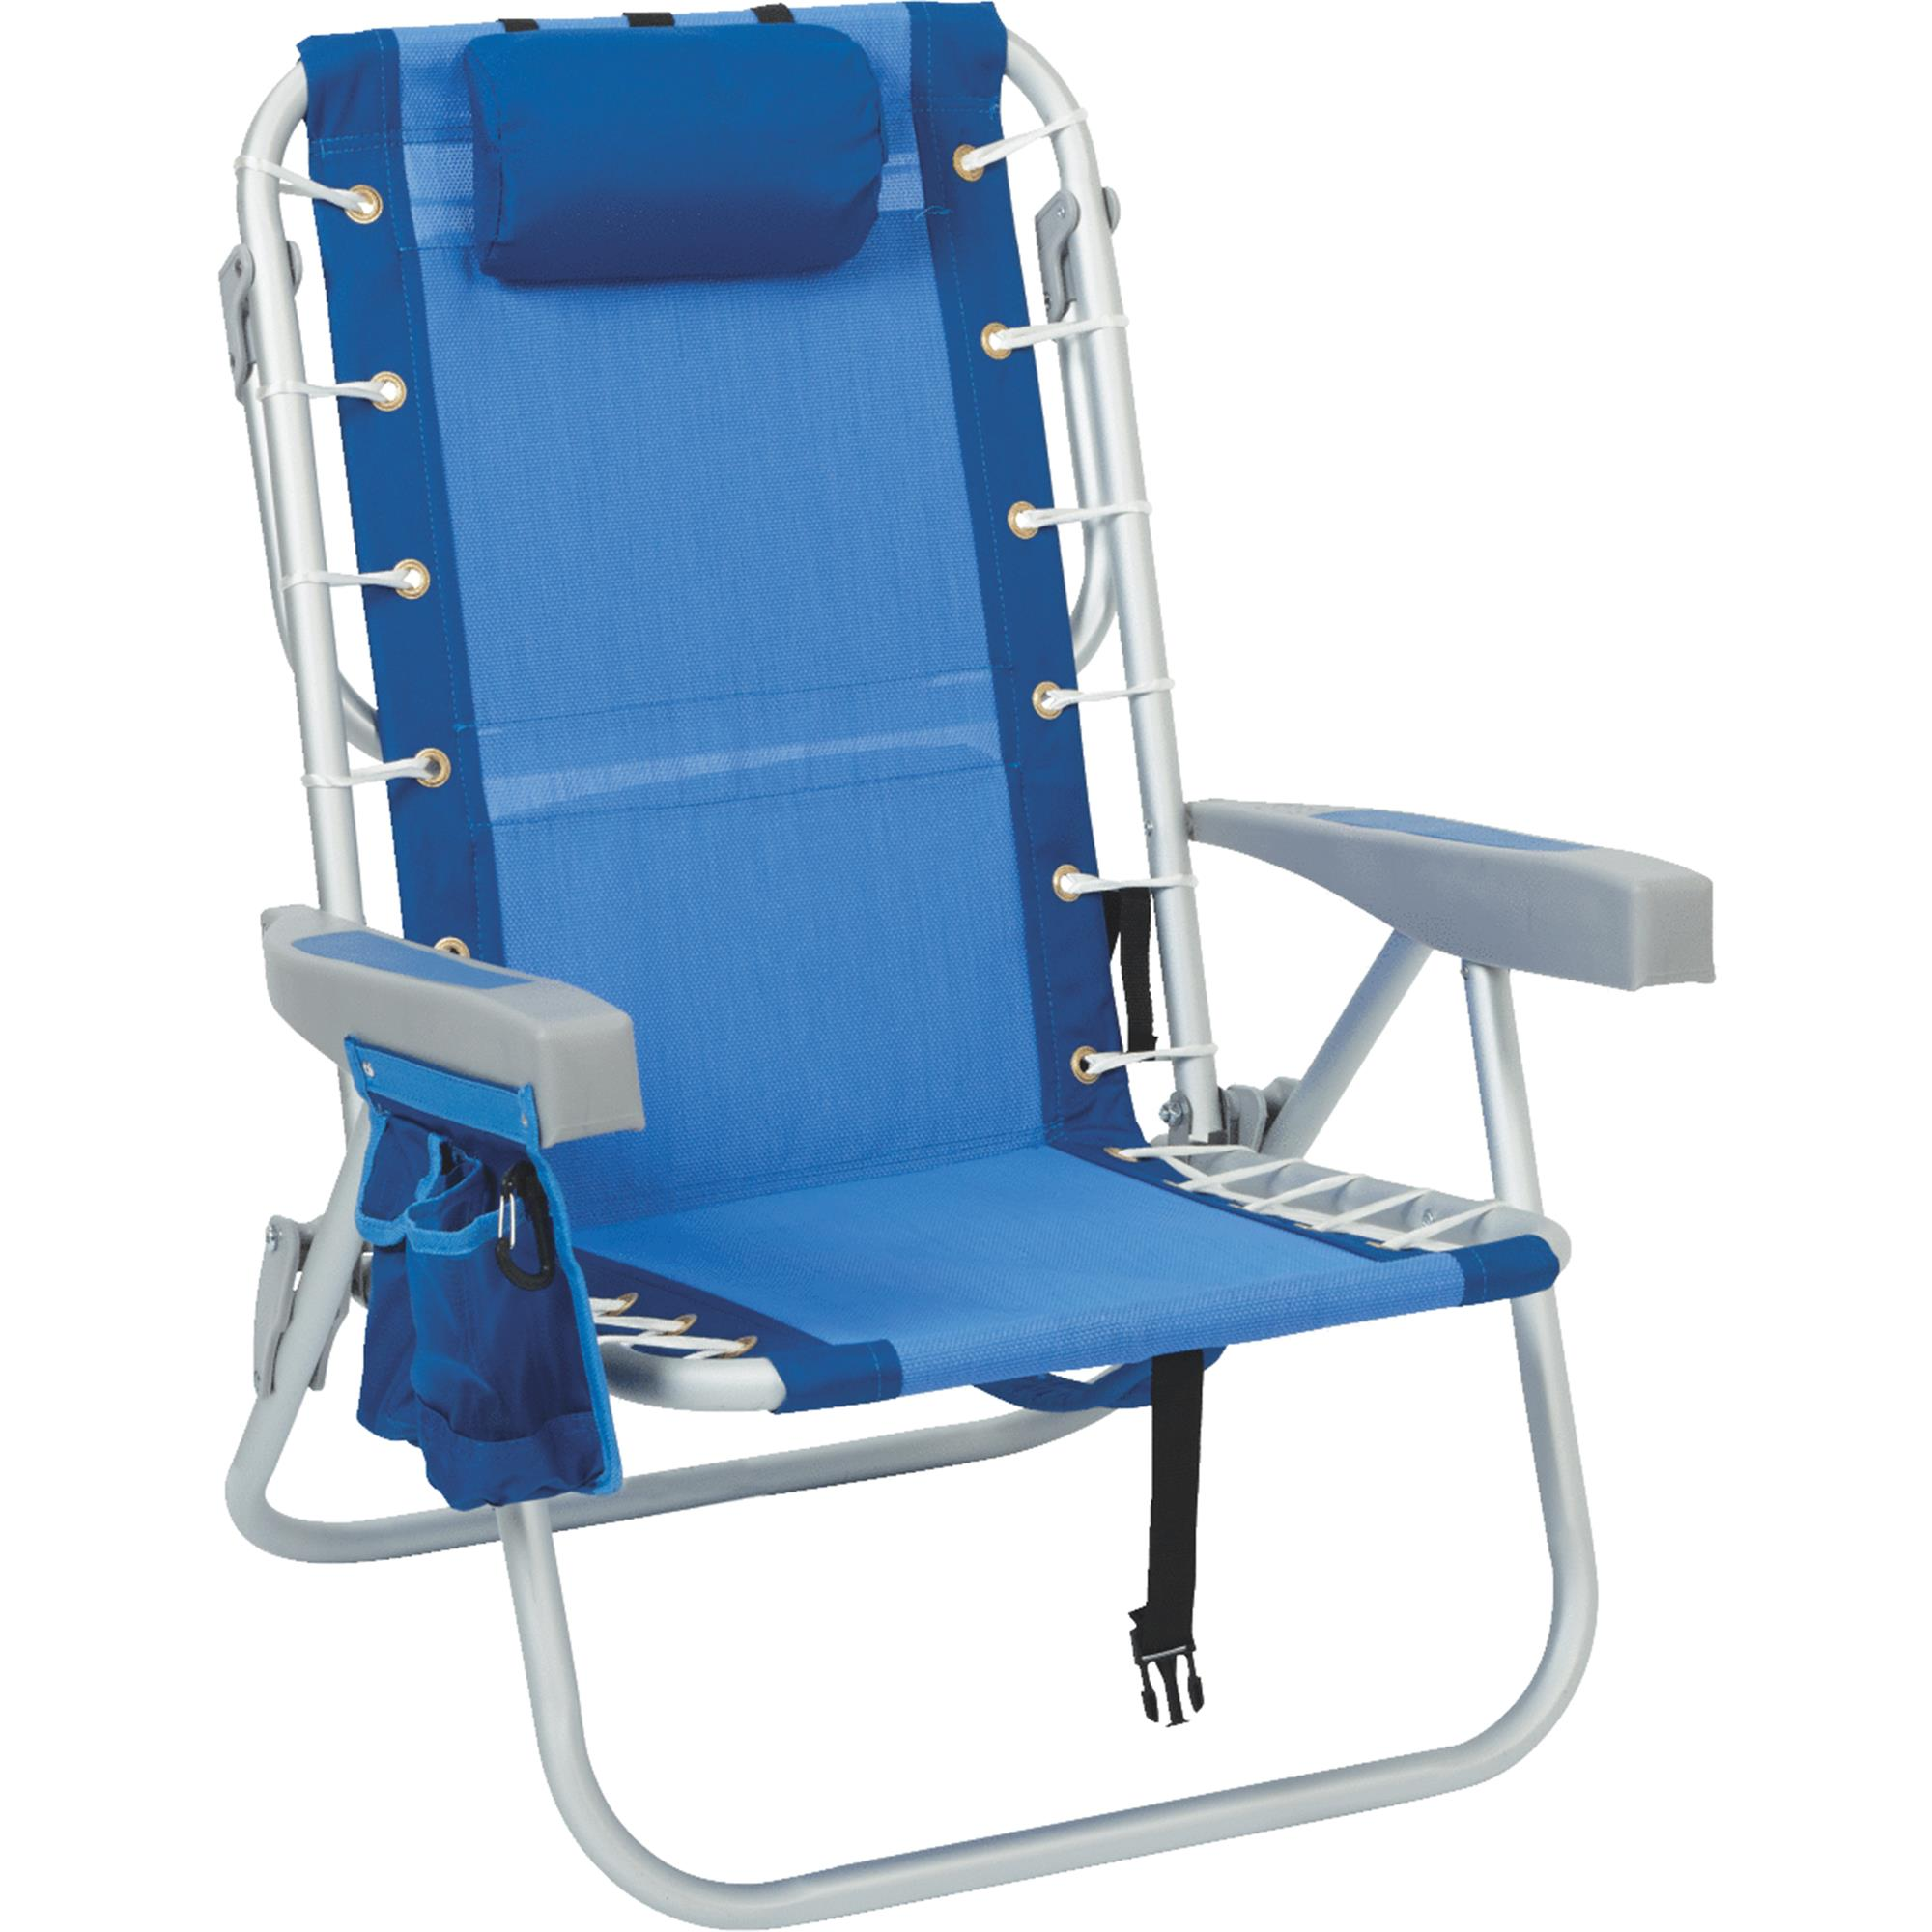 fold out lawn chair cover hire renfrewshire rio brands lace up backpack folding walmart com